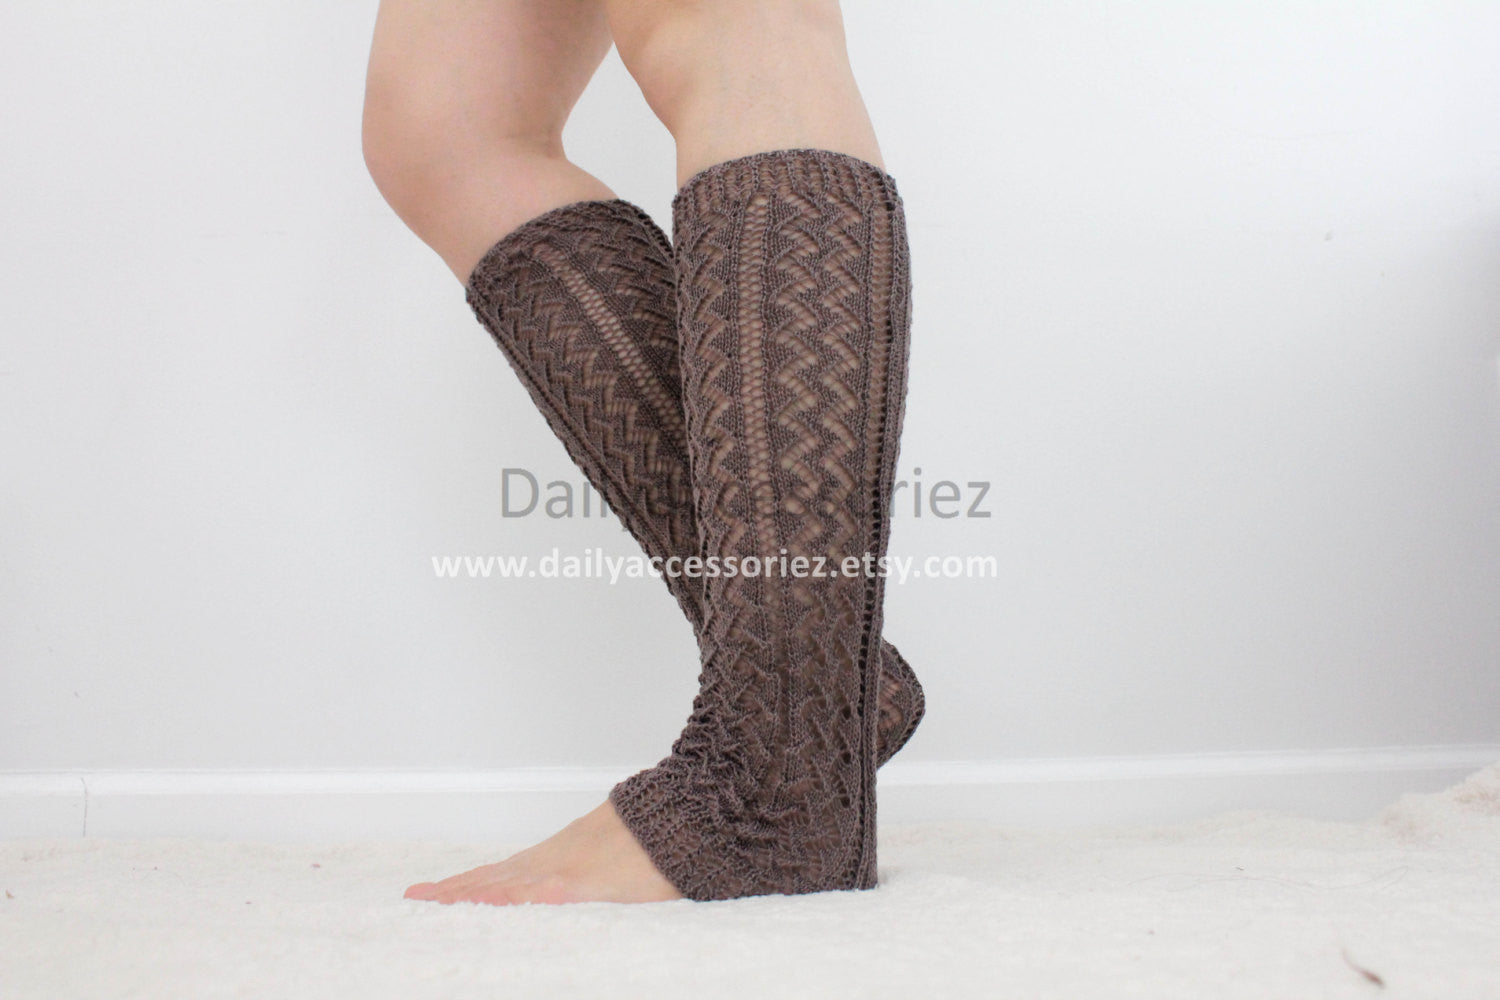 Black Perforated Knit Leg Warmers - Bean Concept - Etsy